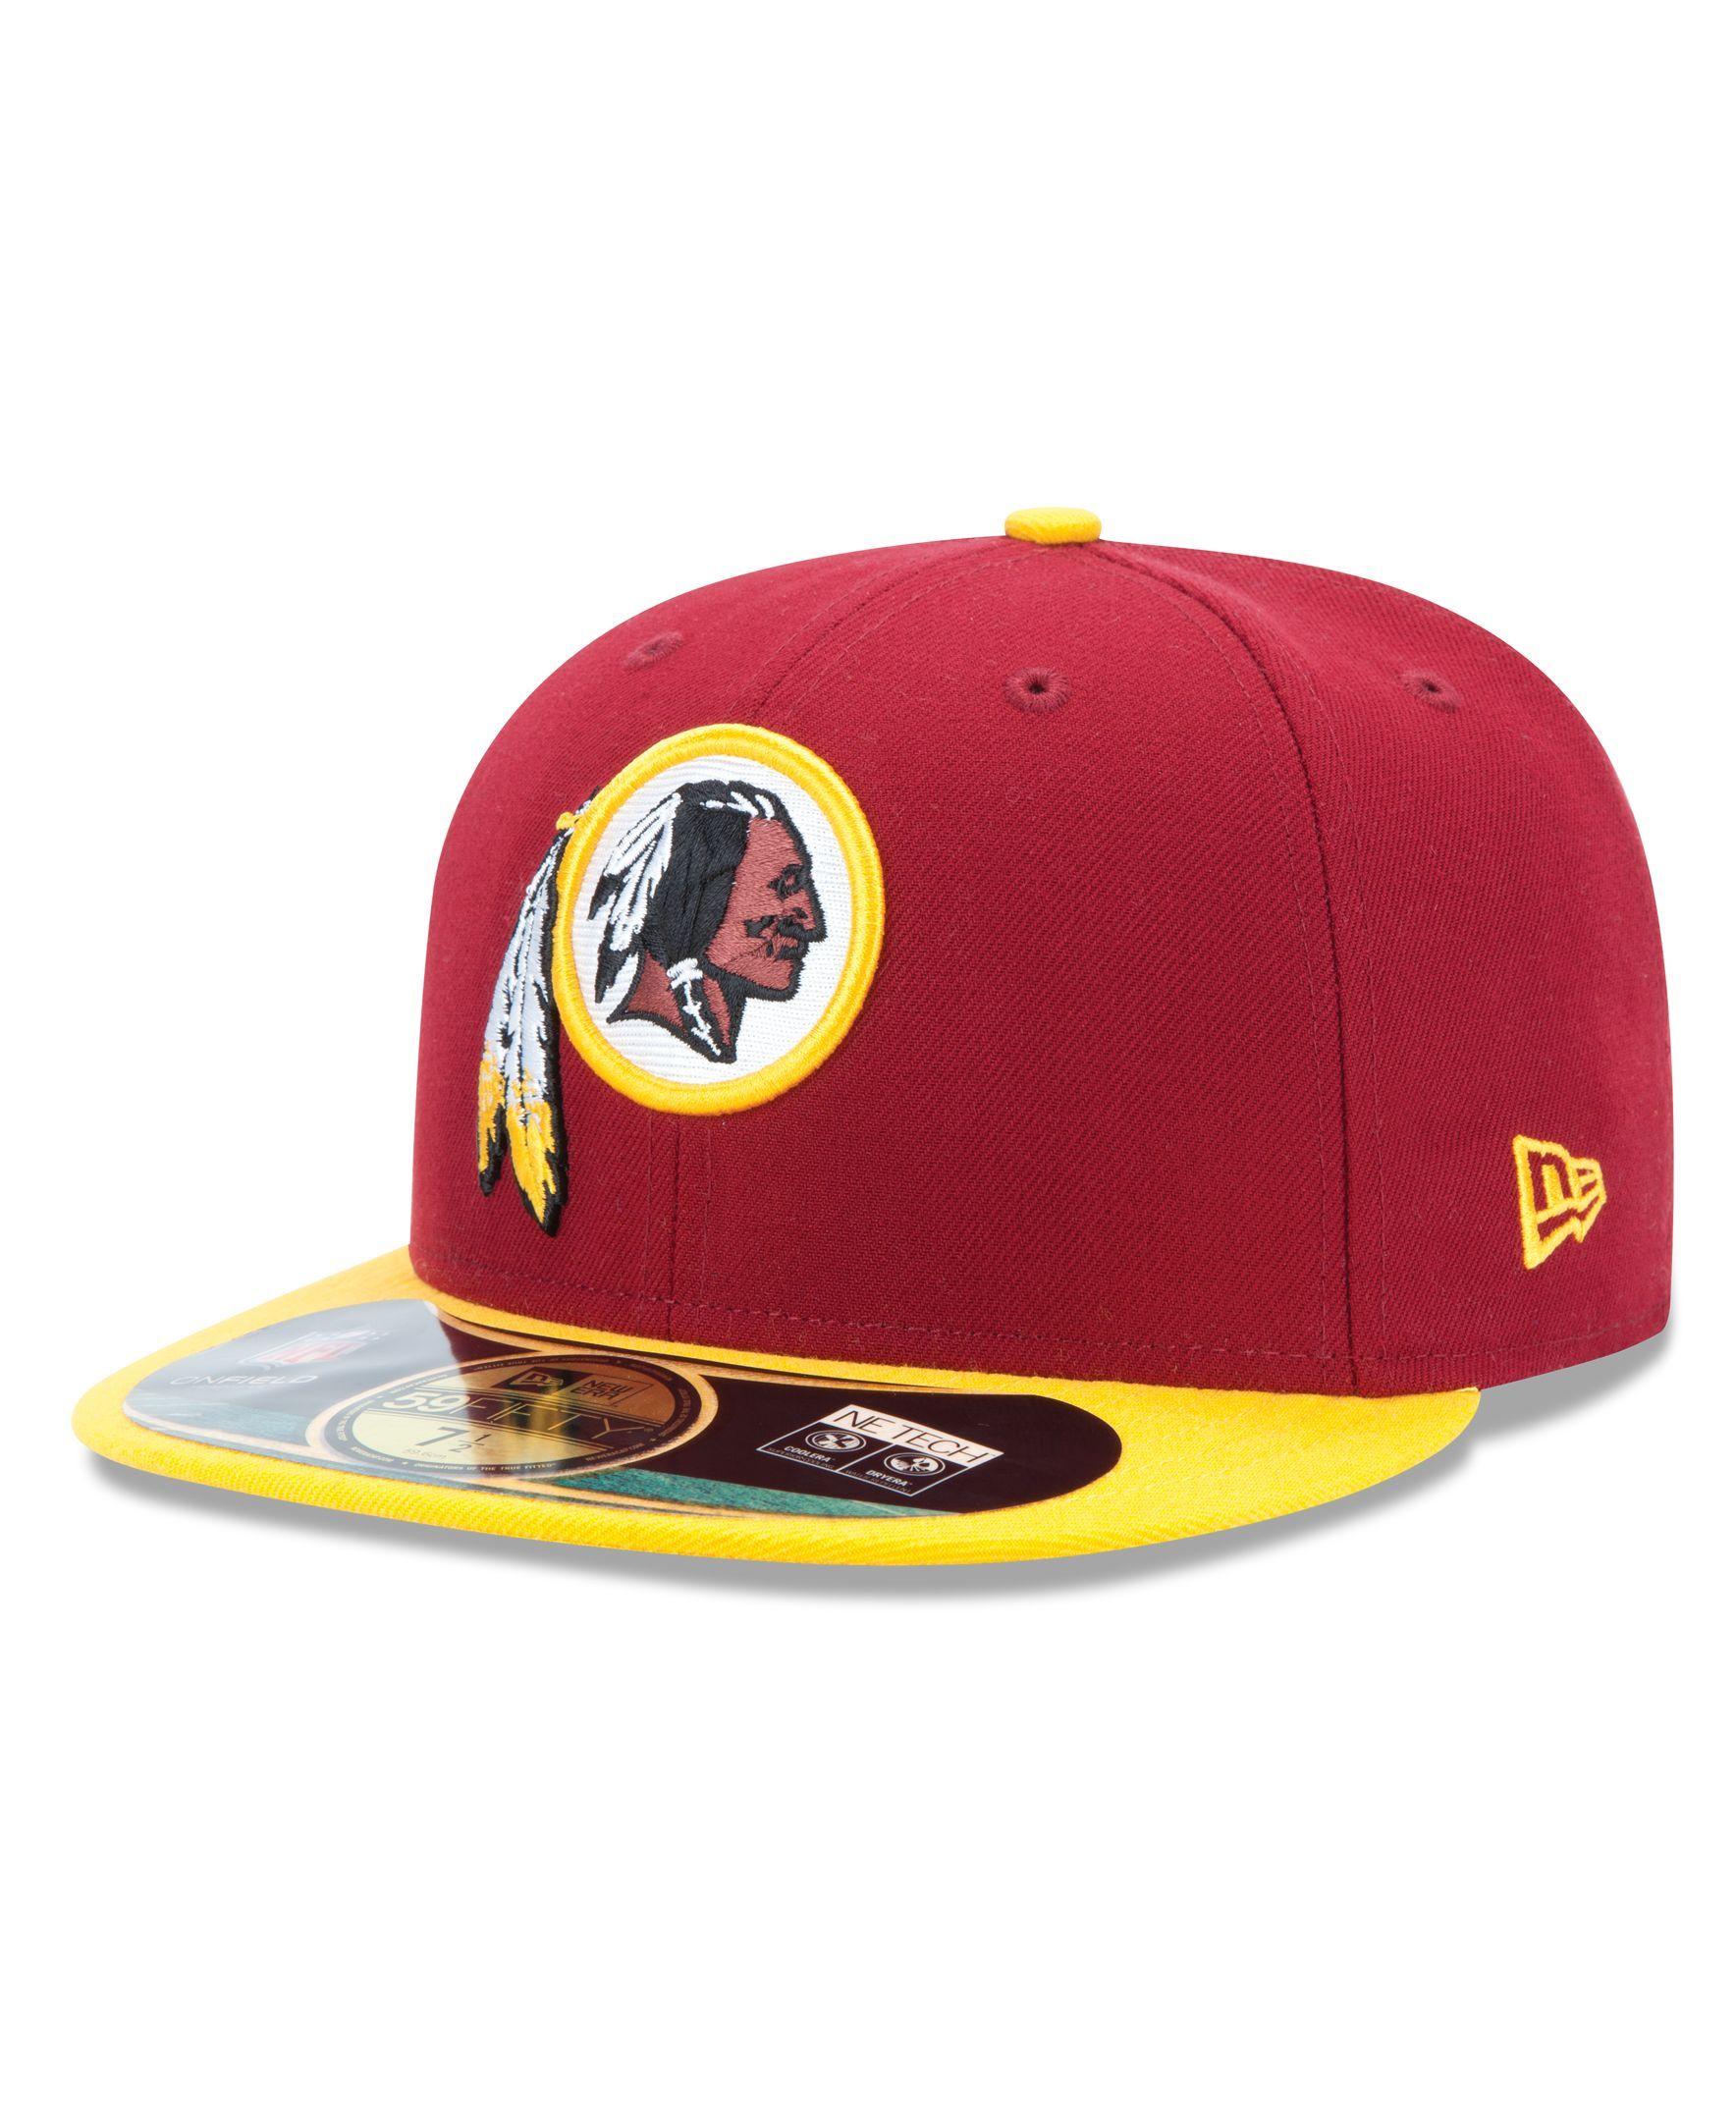 236e496d0 New Era Nfl Hat, Washington Redskins On-Field 59FIFTY Fitted Cap ...